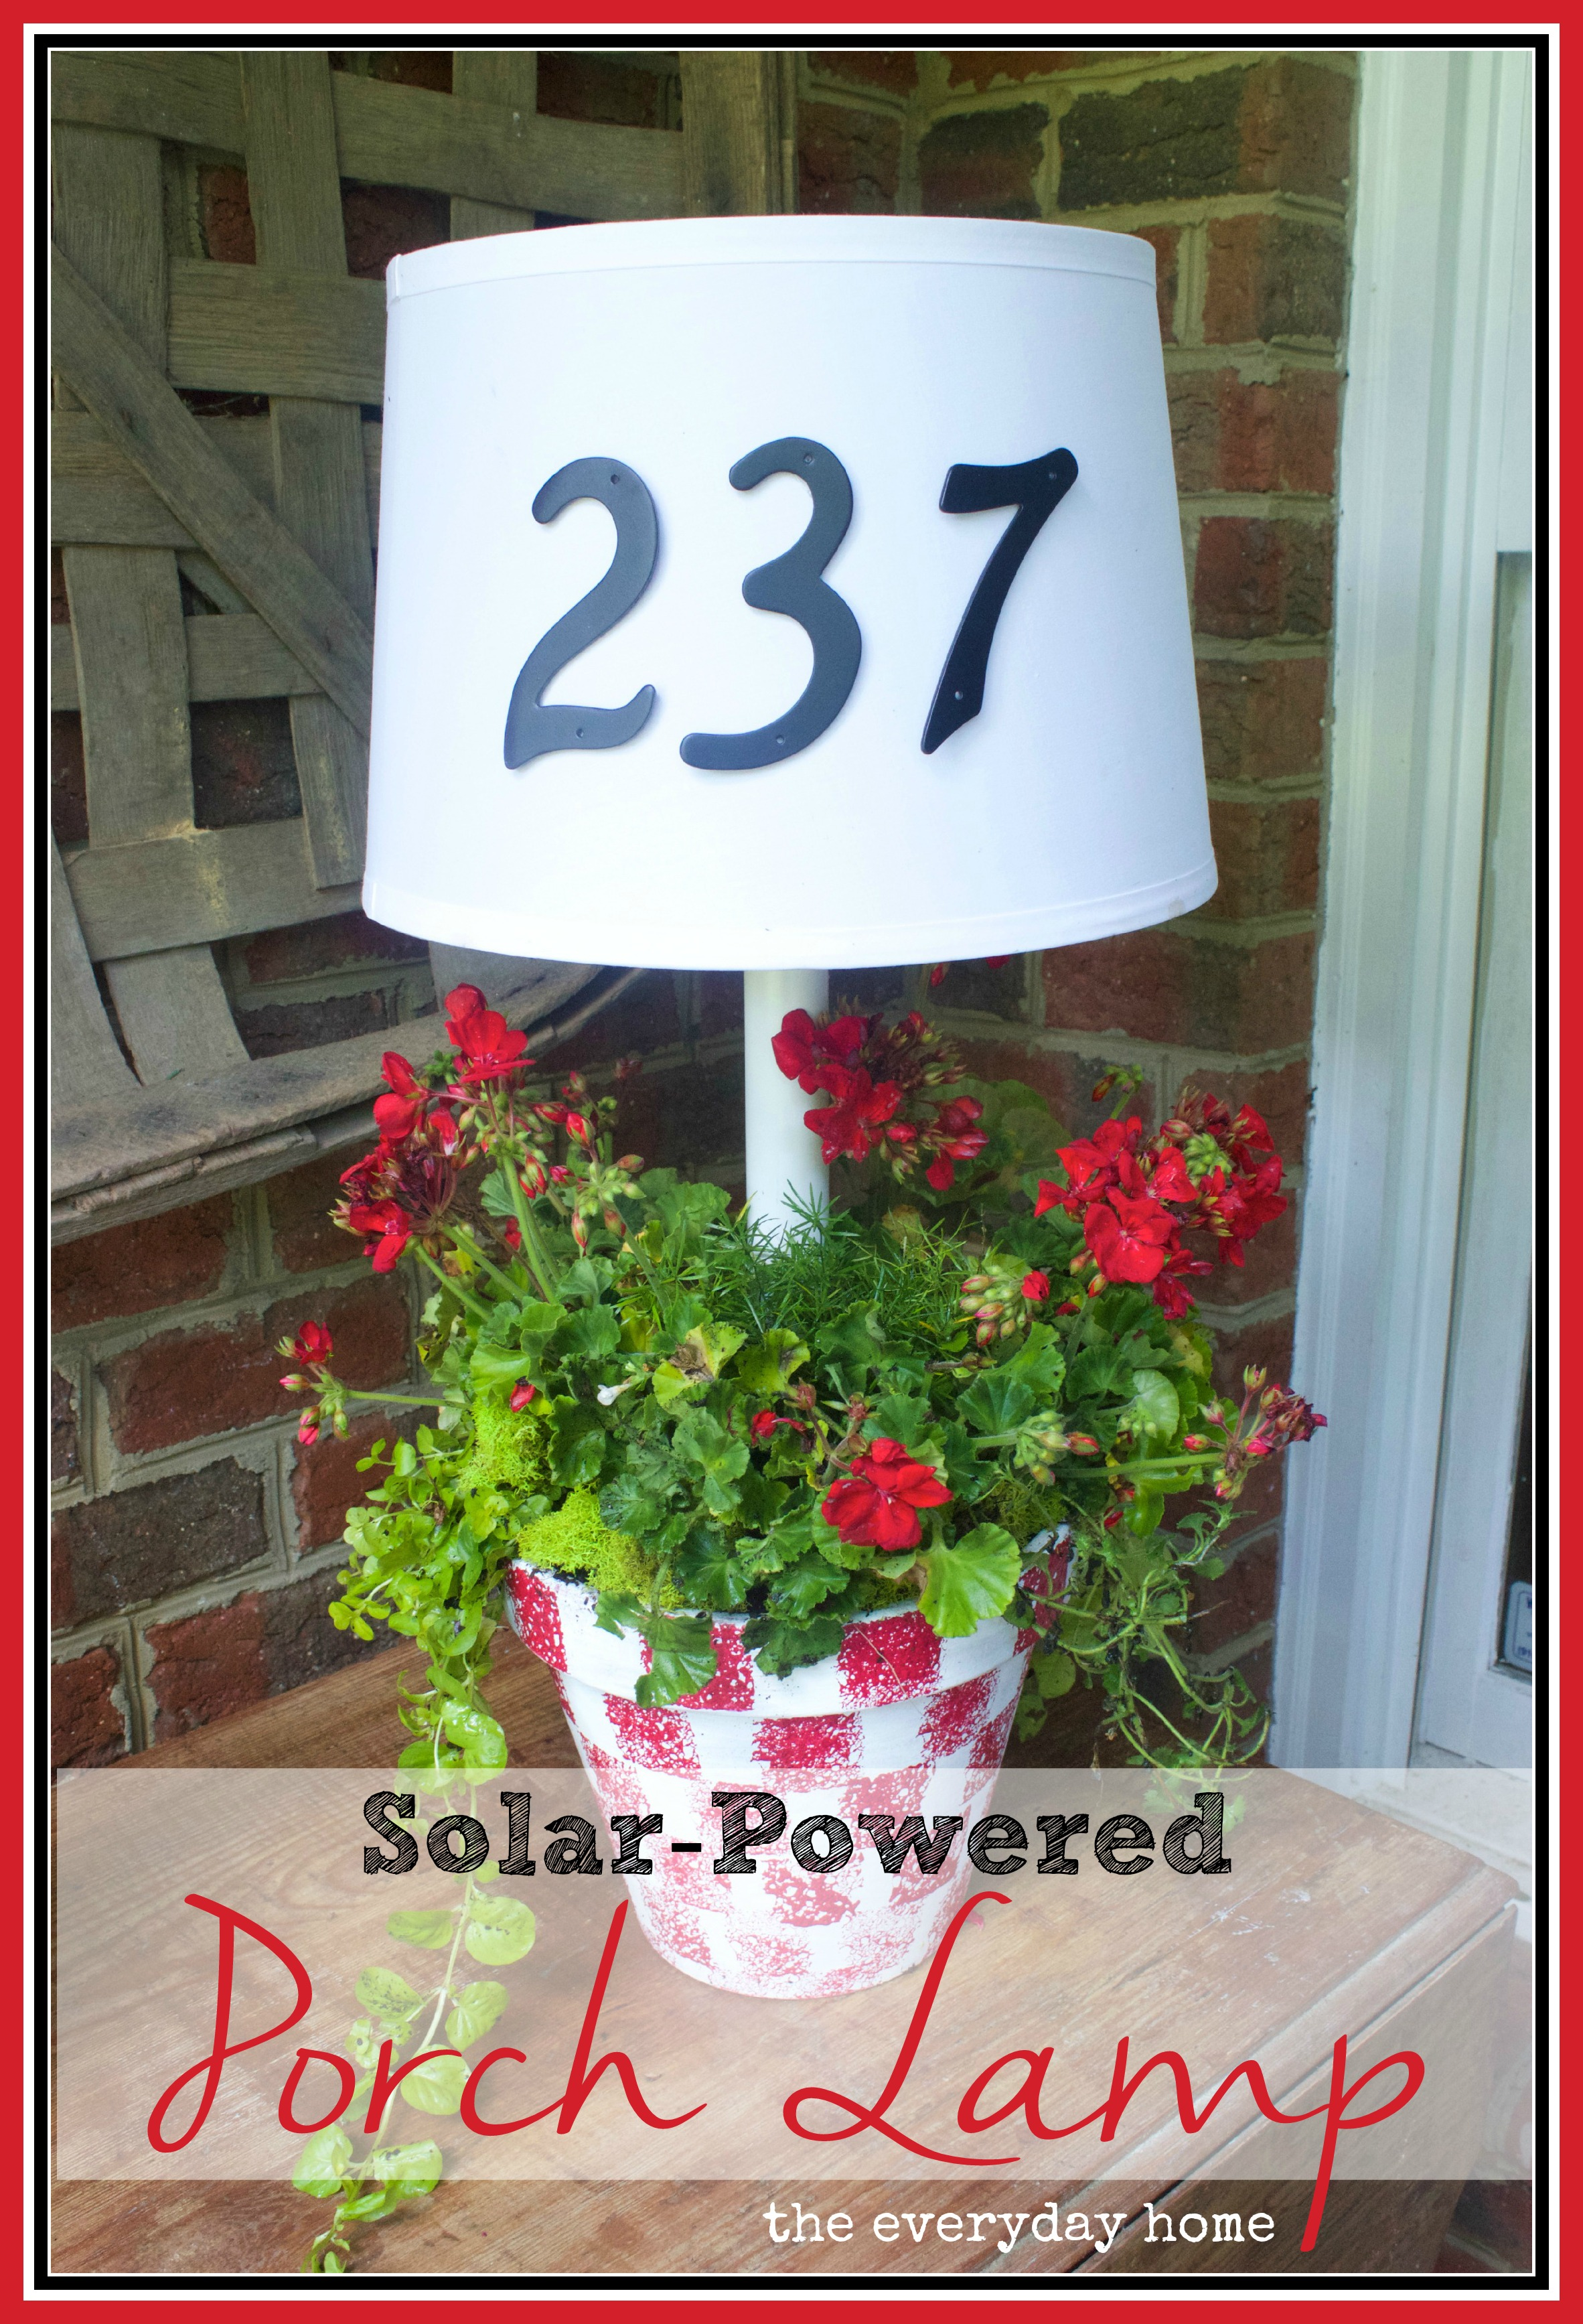 solar dusk size planter black newsize ii light dawn baytown gama bw post gs to fixture sonic with led lamp